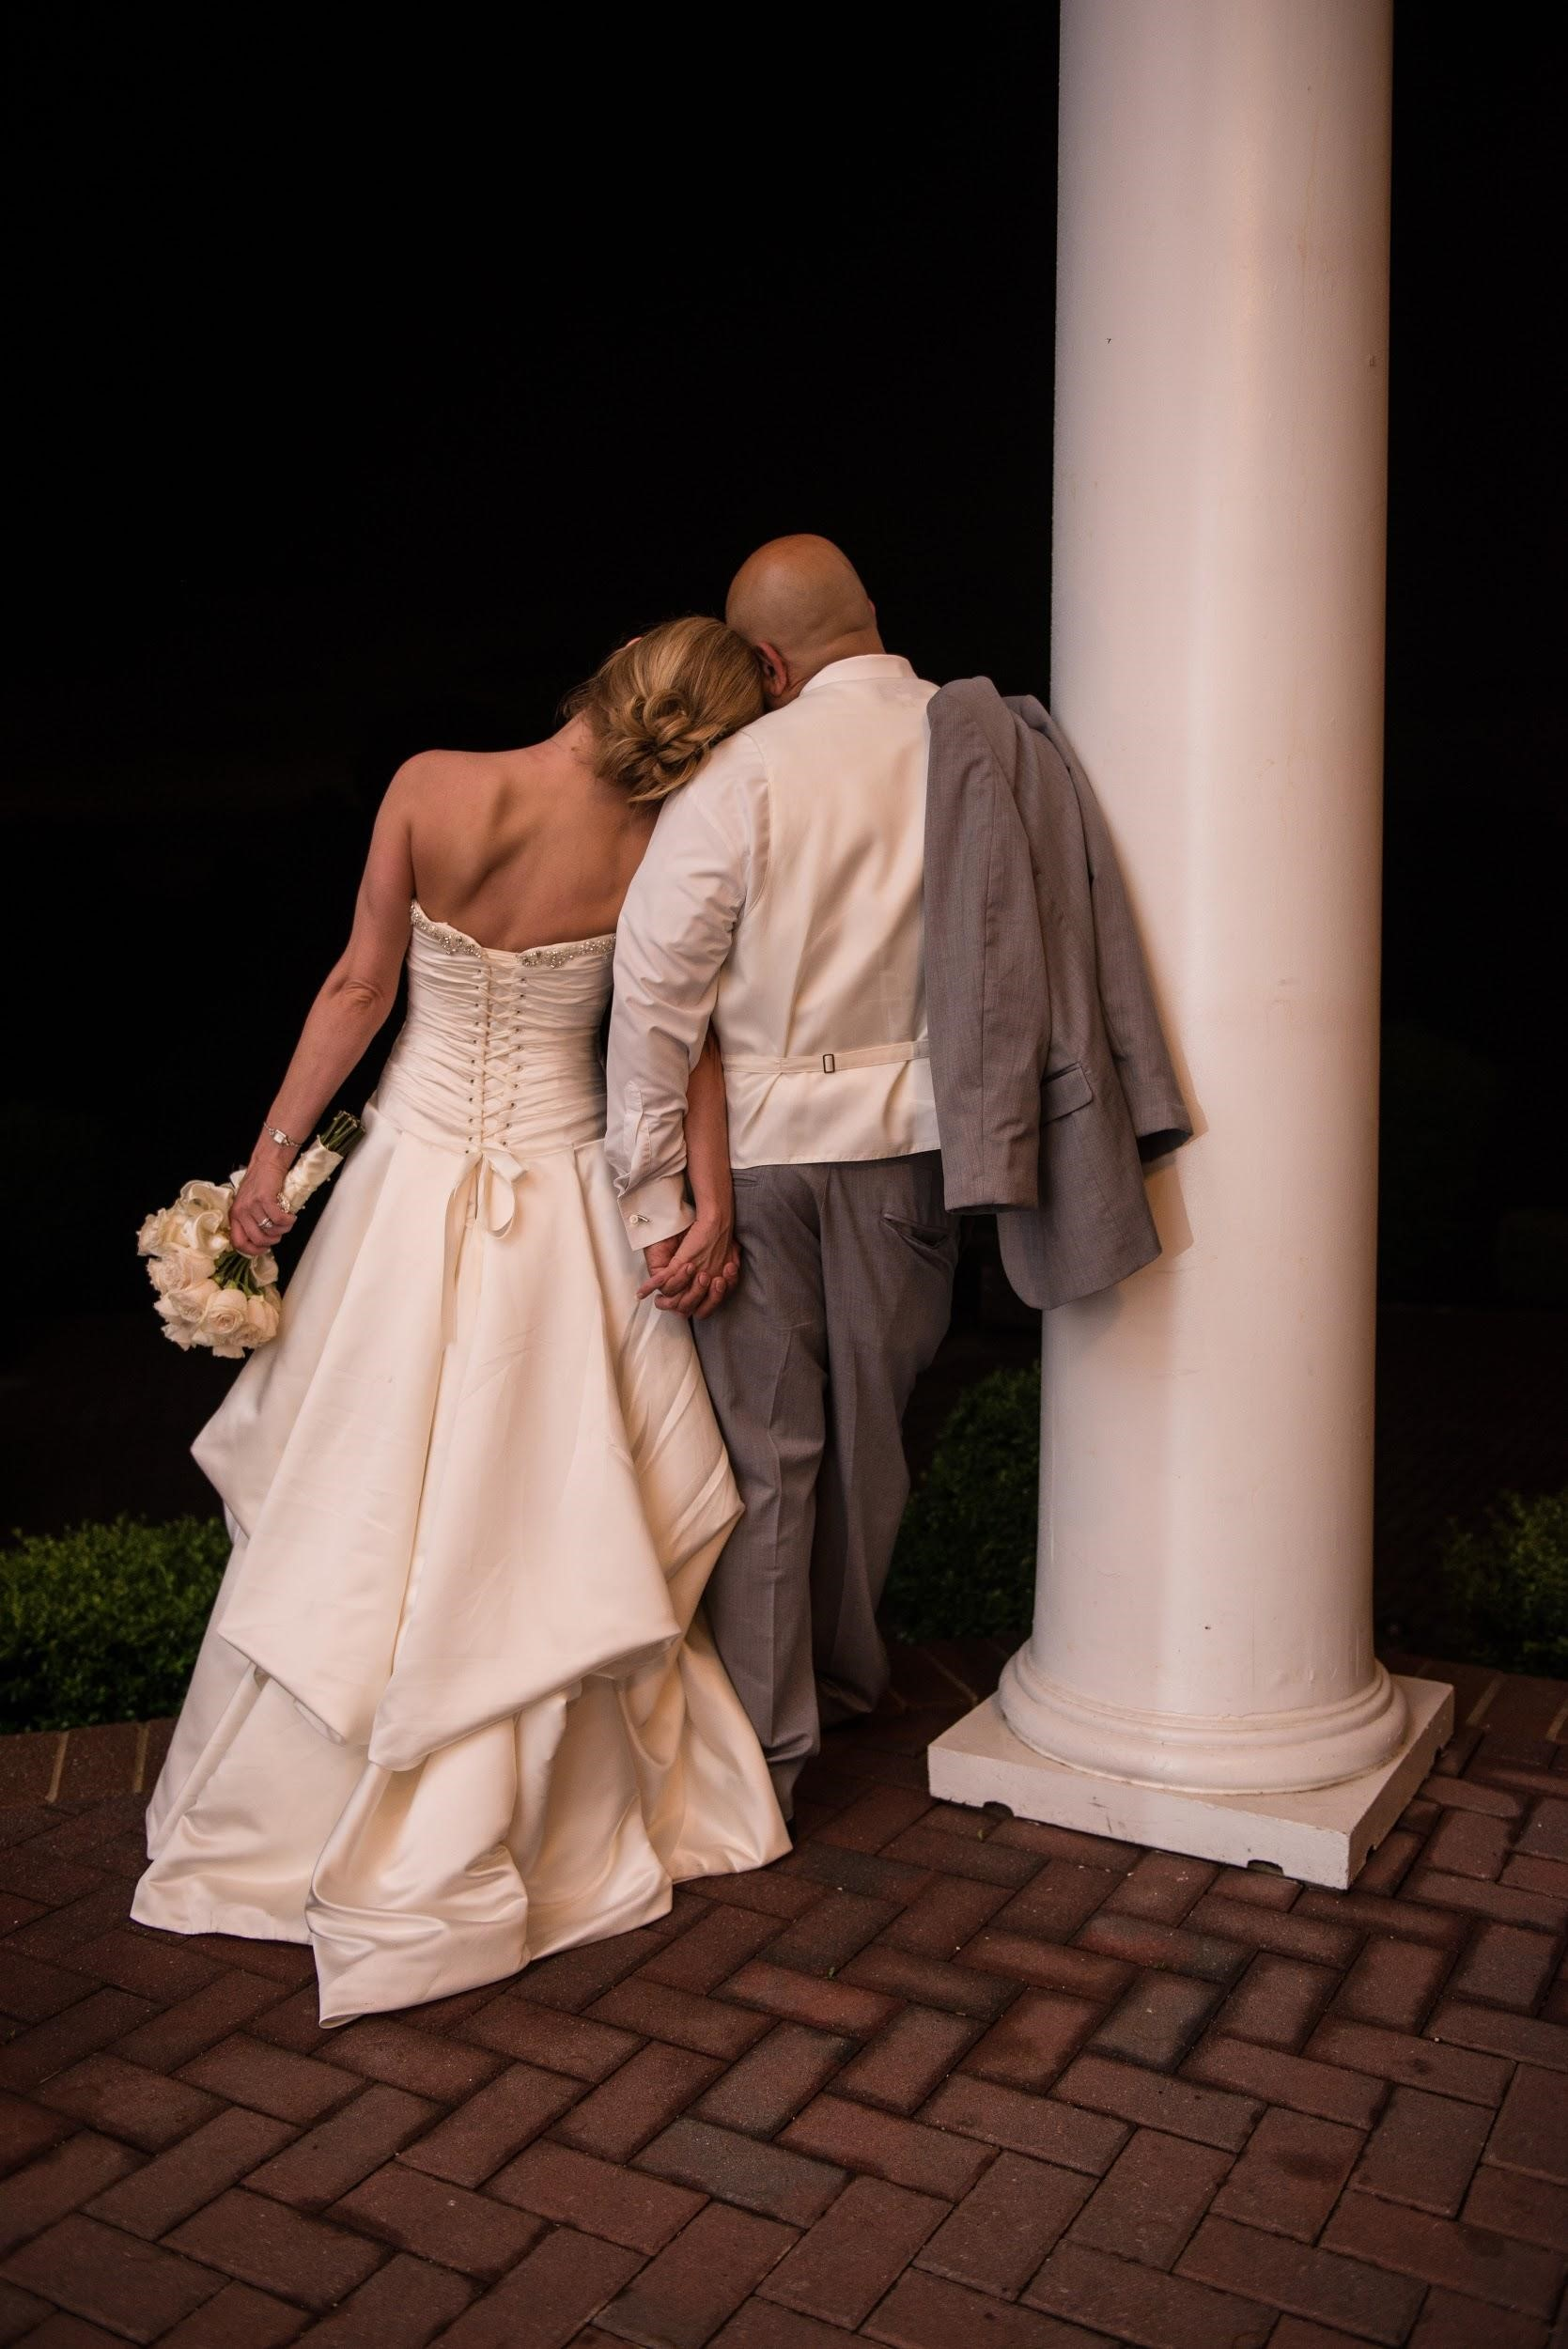 10 Ideas for Creating Memorable Wedding Day Moments